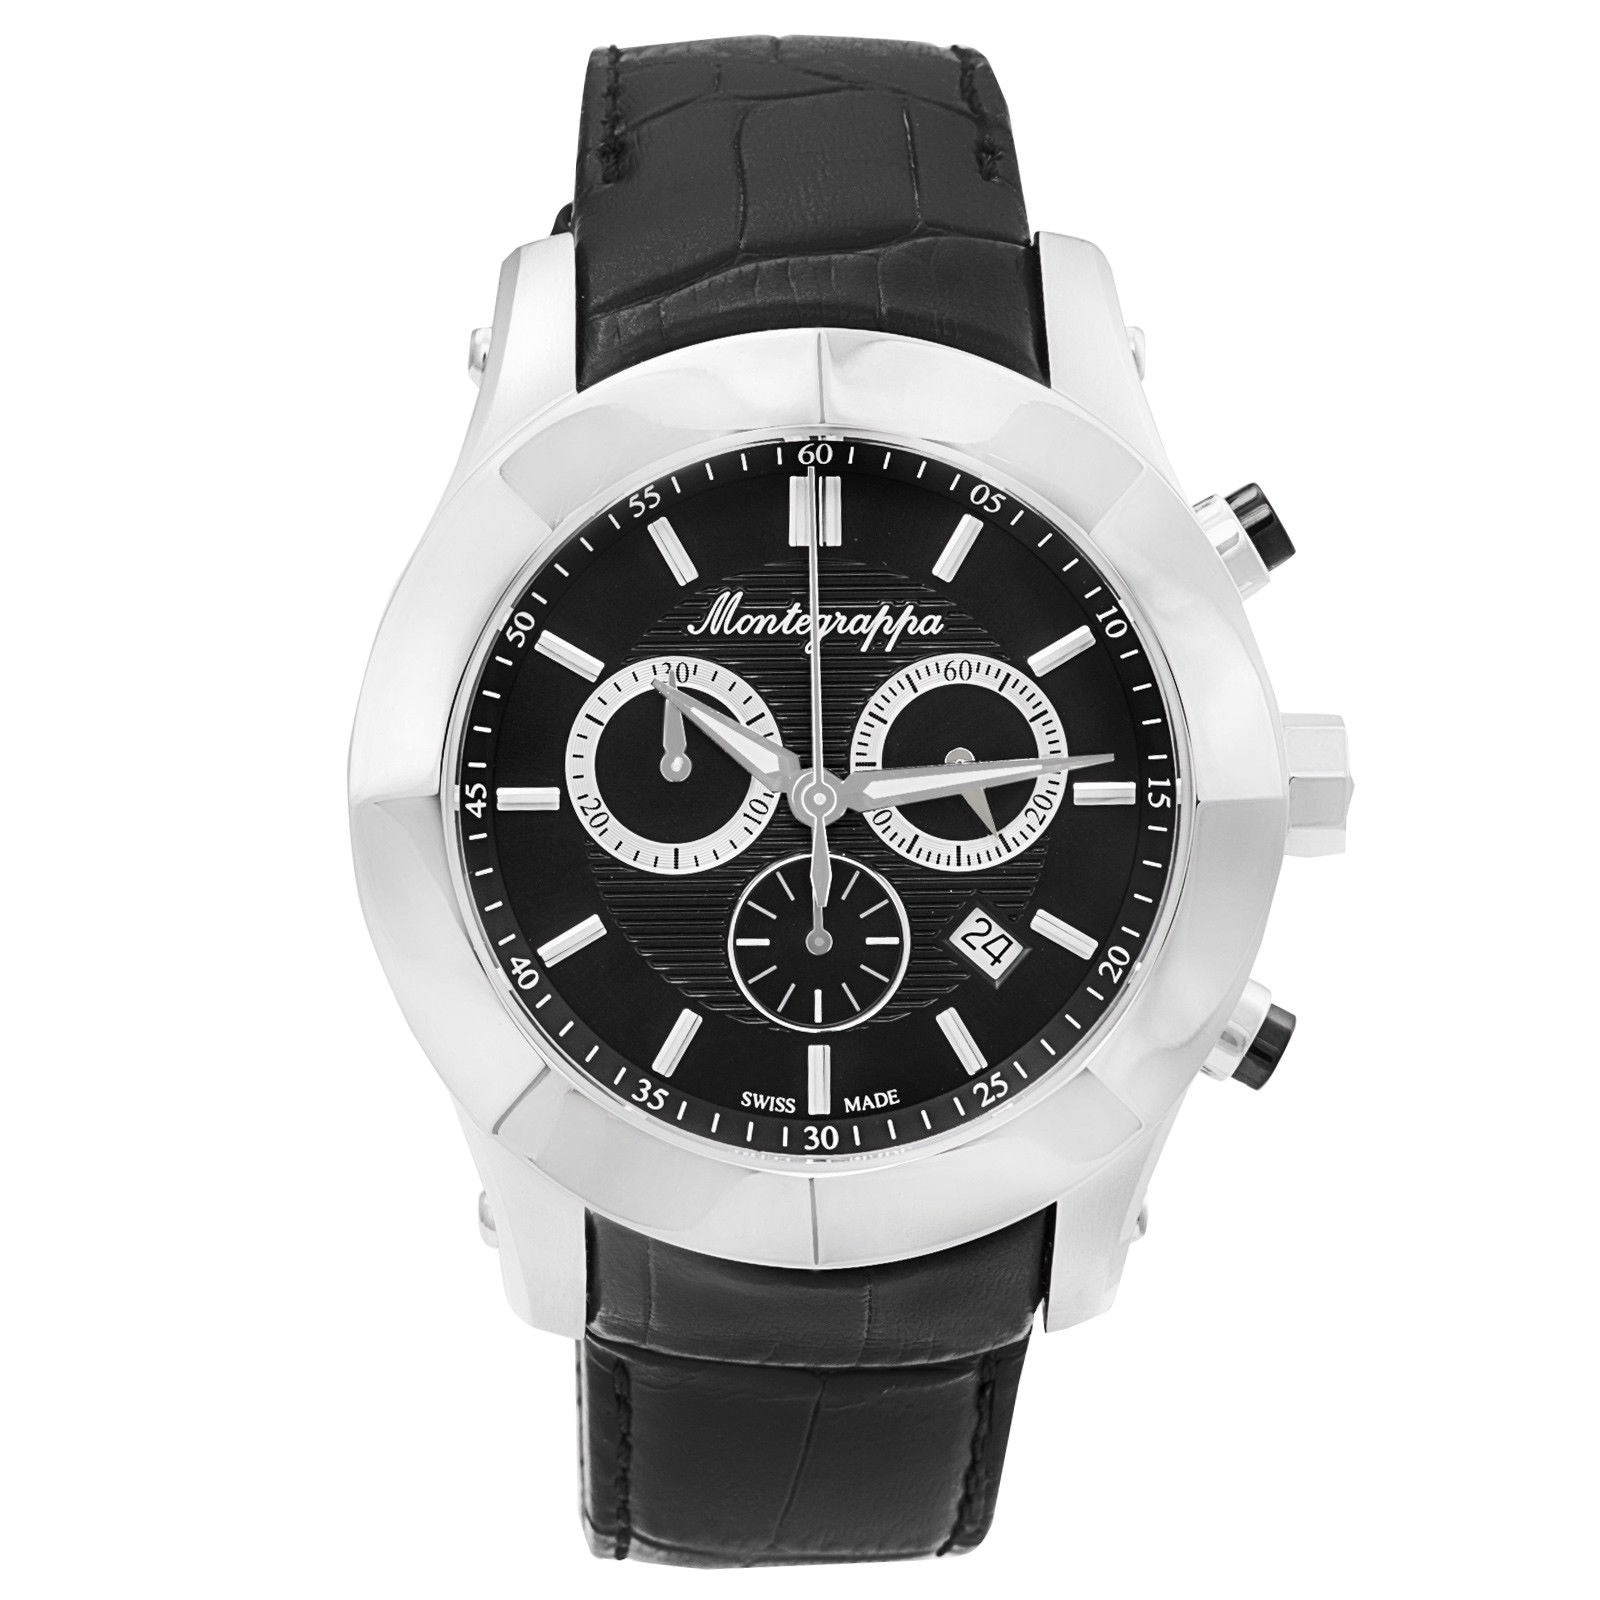 Nero Uno Chronograph Men's Swiss Made Watch IDNUWA00-Luxury Watches | Mens And Ladies Luxury Watches | Upscale Time